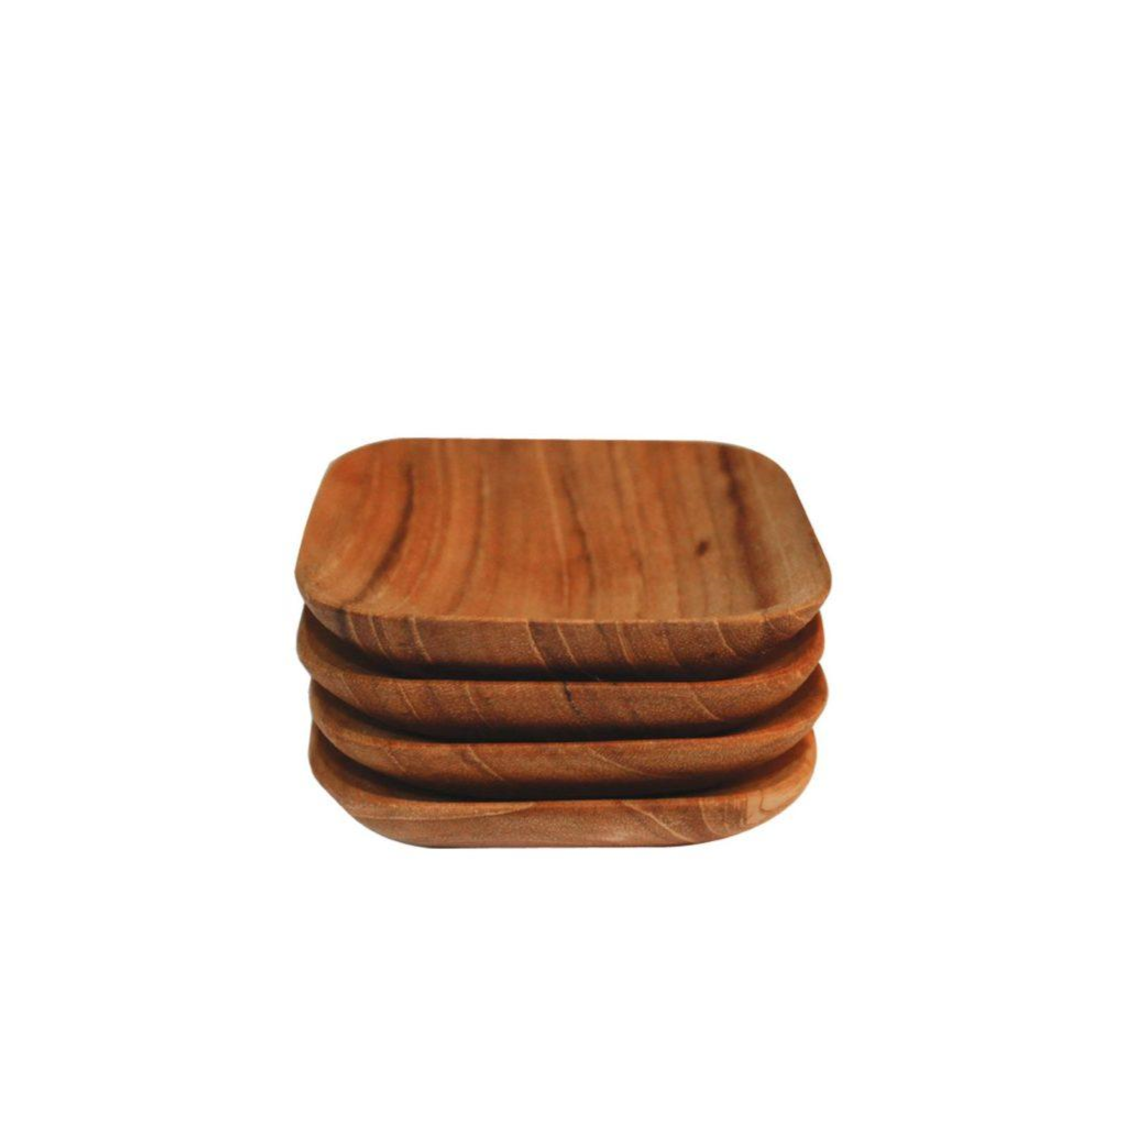 TEAK TINY SQUARE PINCH BOWL SET OF 4